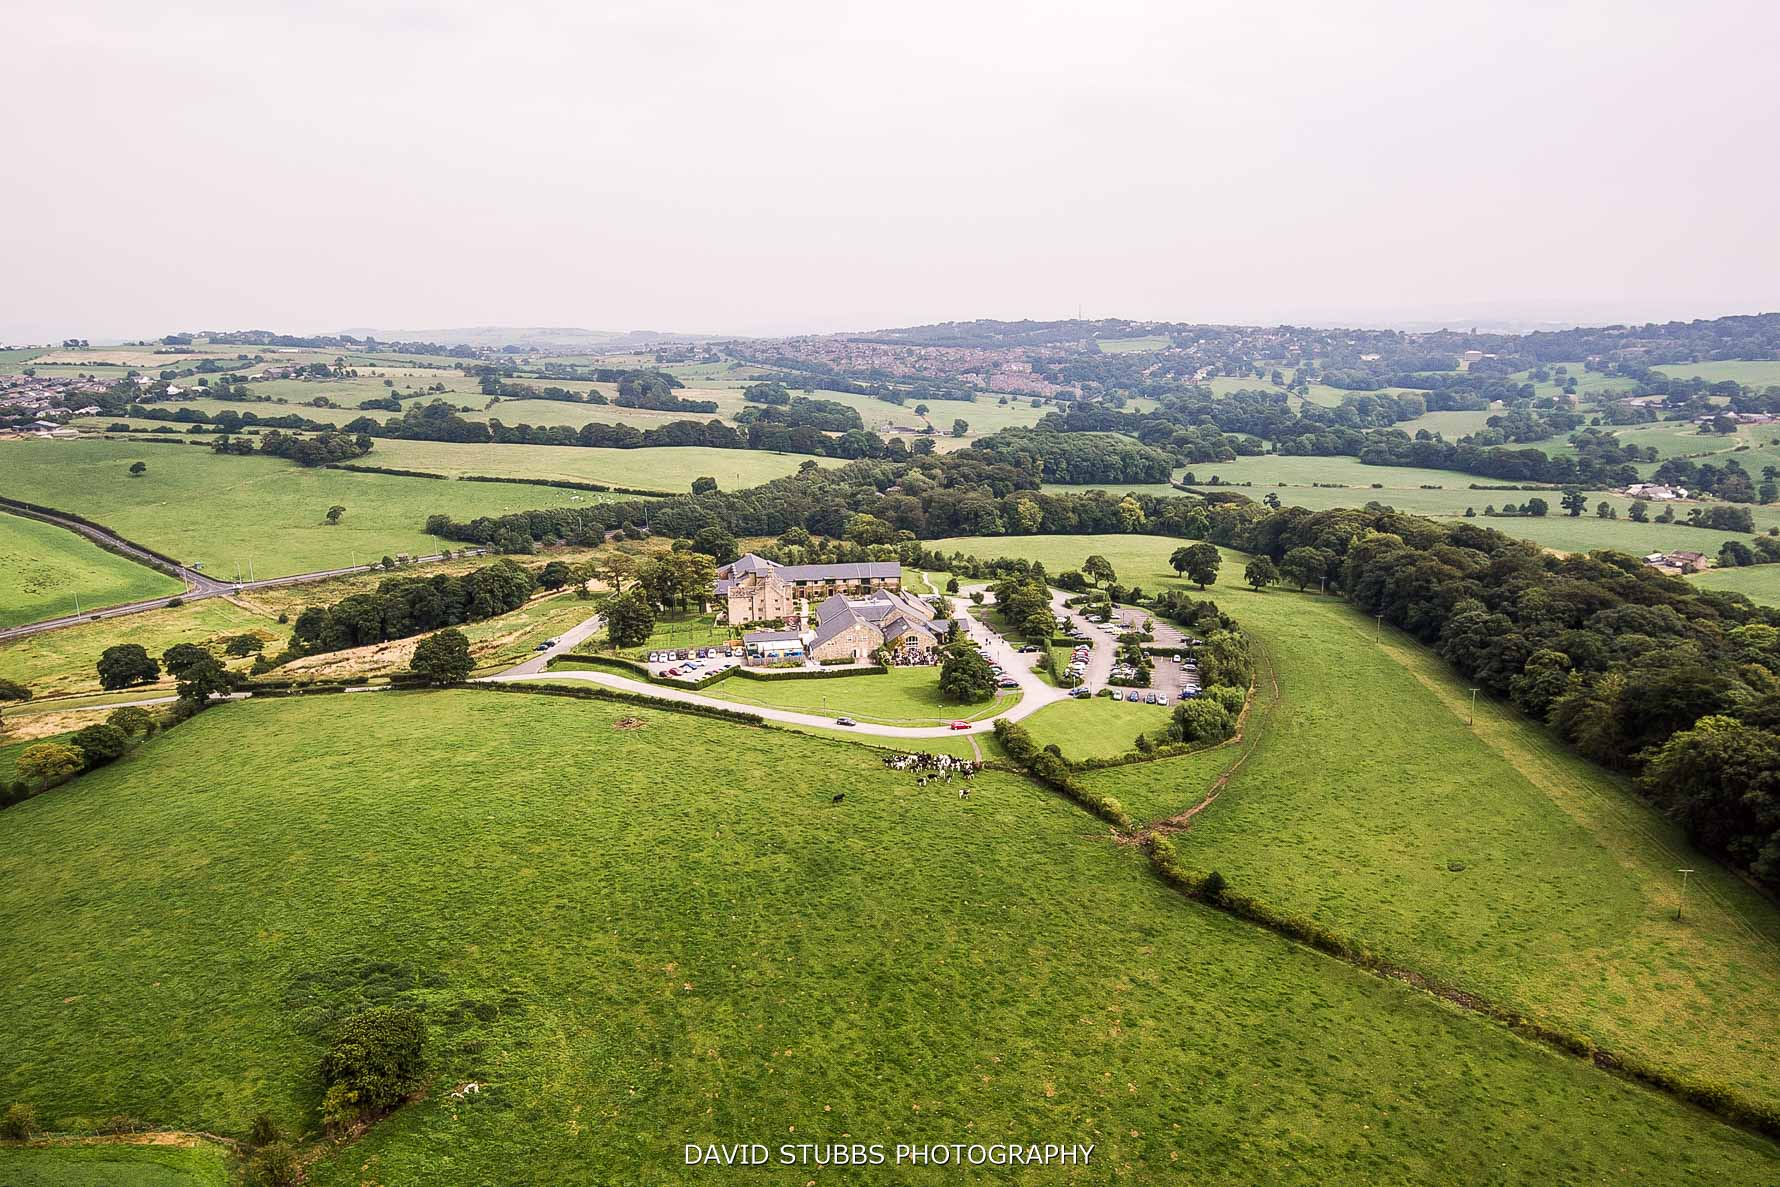 Stanley house from the air, helicopter or drone